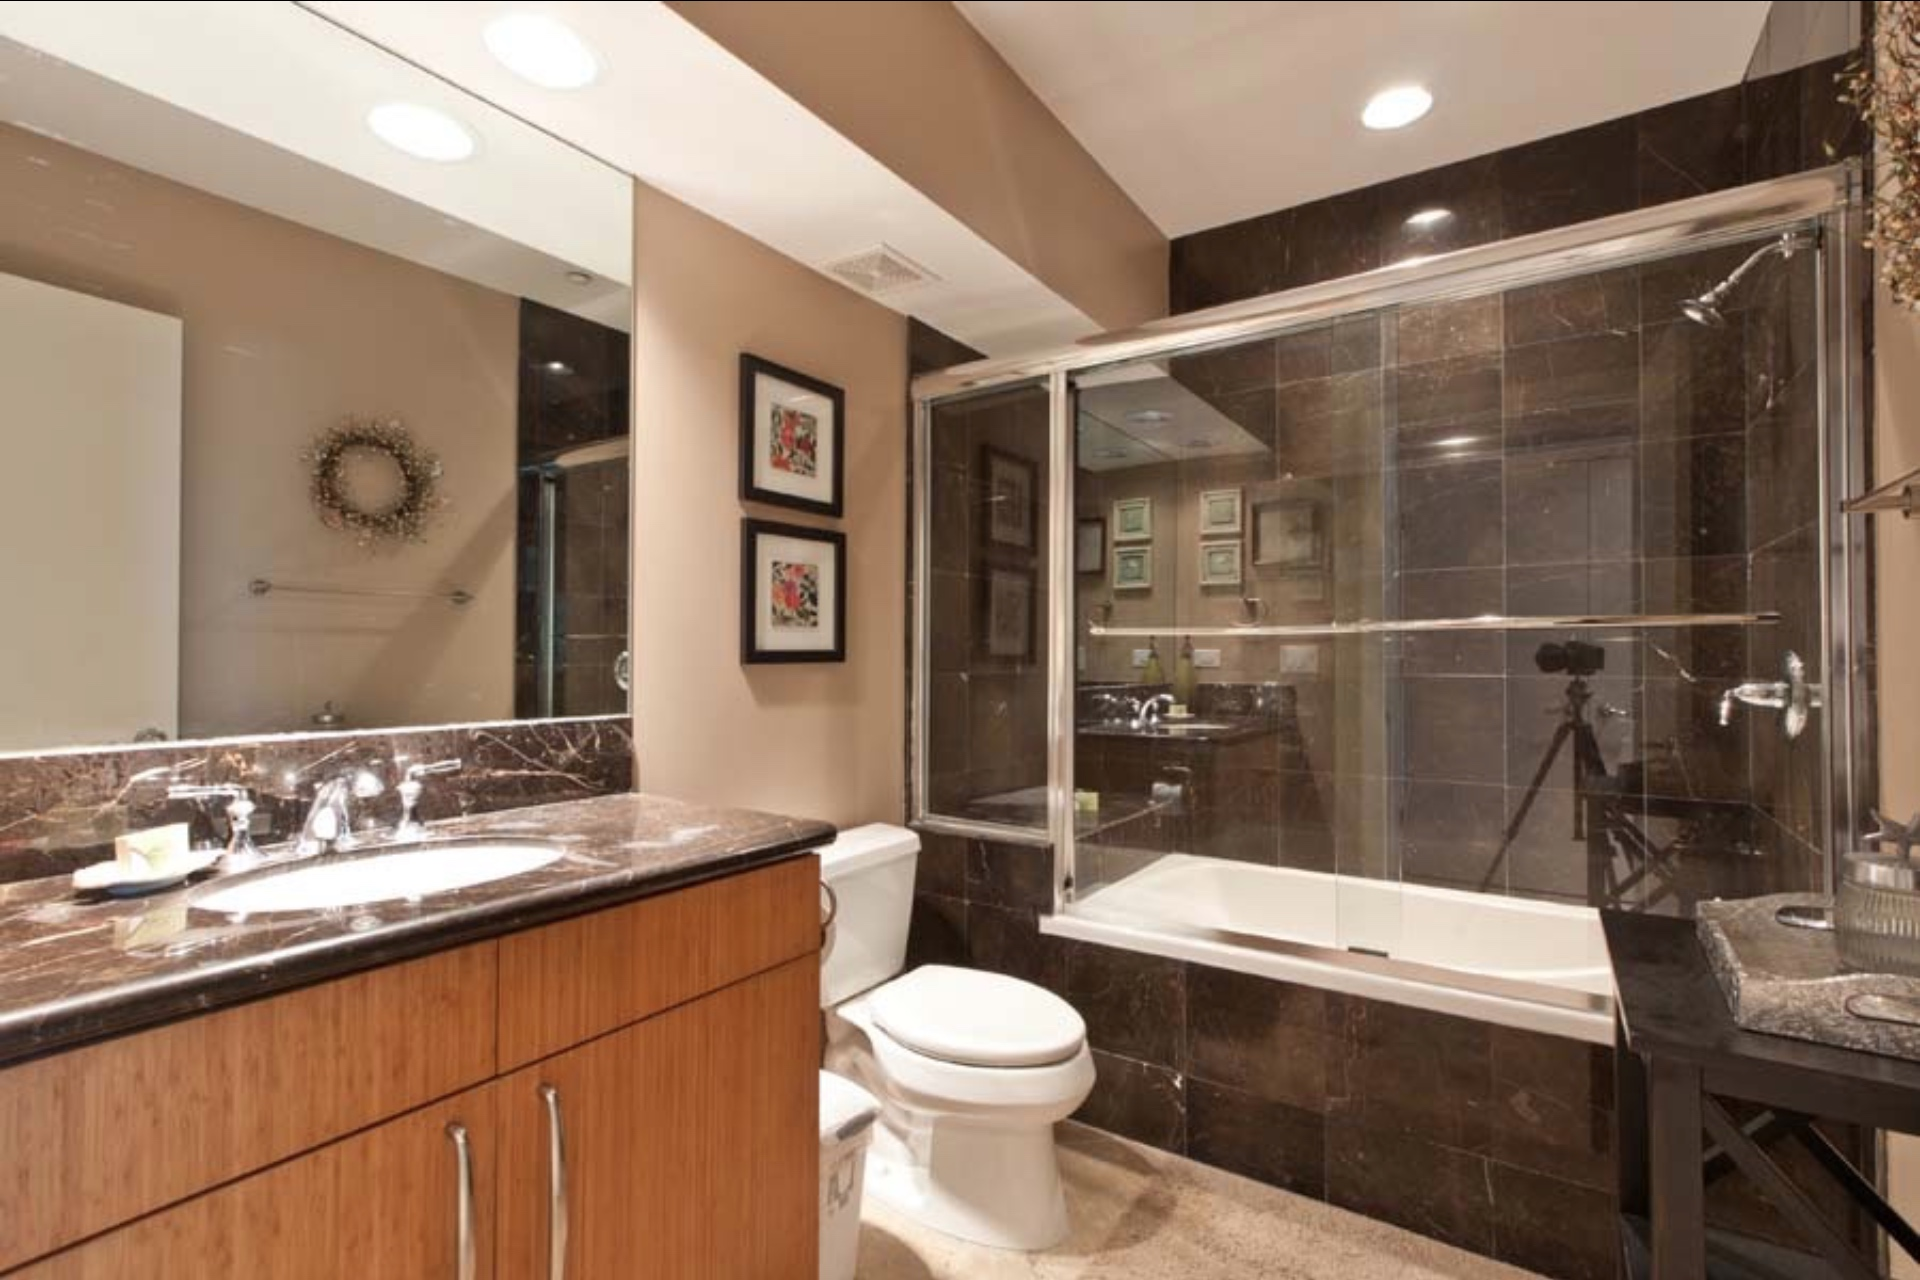 Guest bathroom on the first floor.